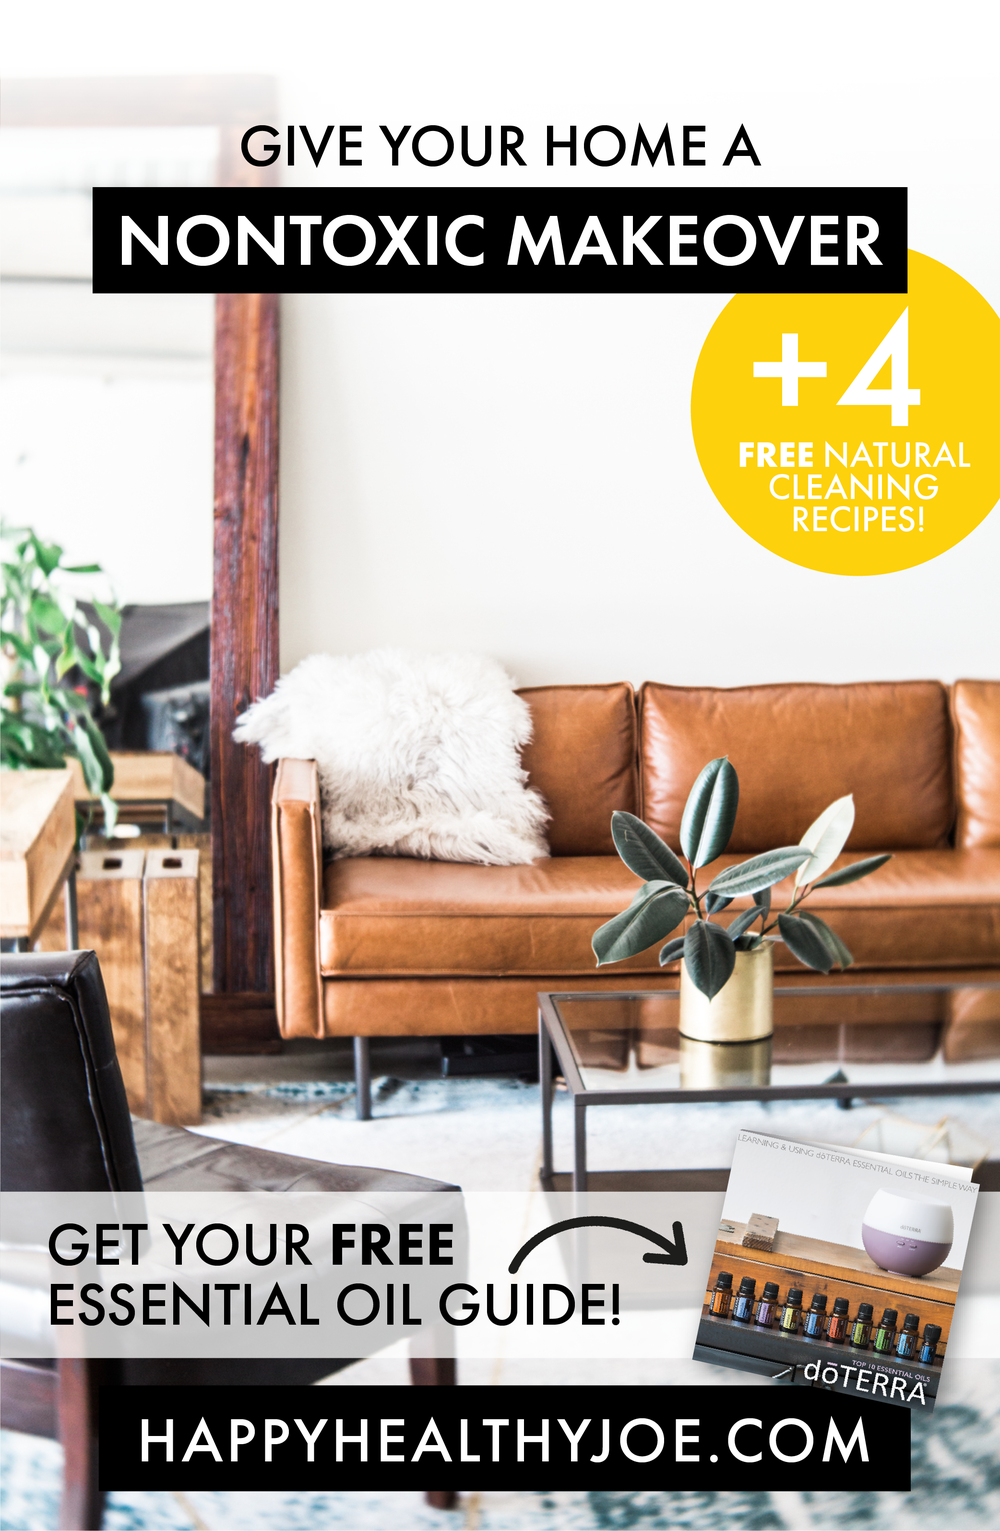 Give Your Home A Nontoxic Makeover | Happy Healthy Joe | Certified Integrative Health Coach